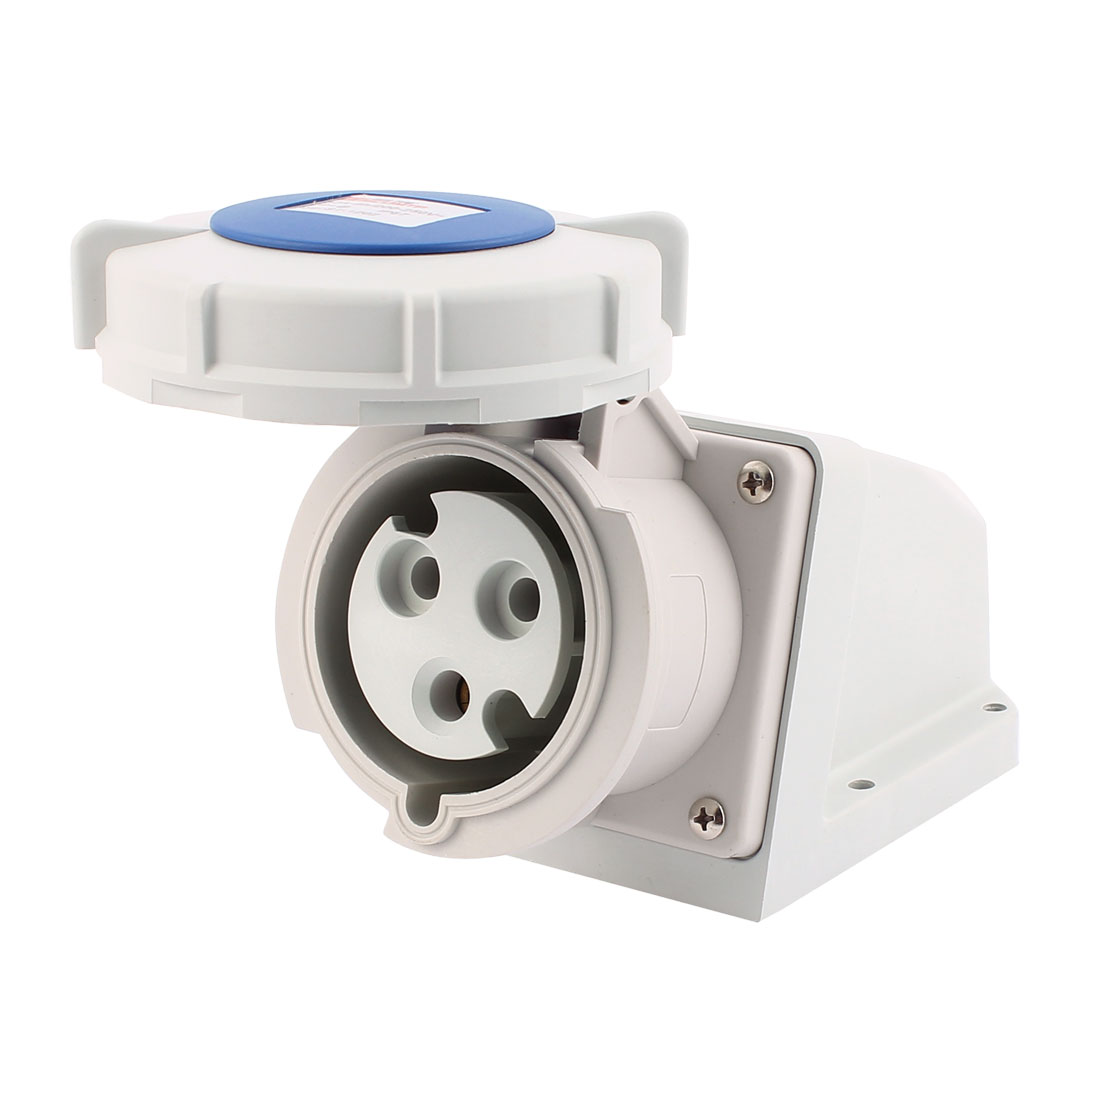 AC 200V-250V 32A IP67 2P+E 3-Terminal Female Industrial Caravan Socket